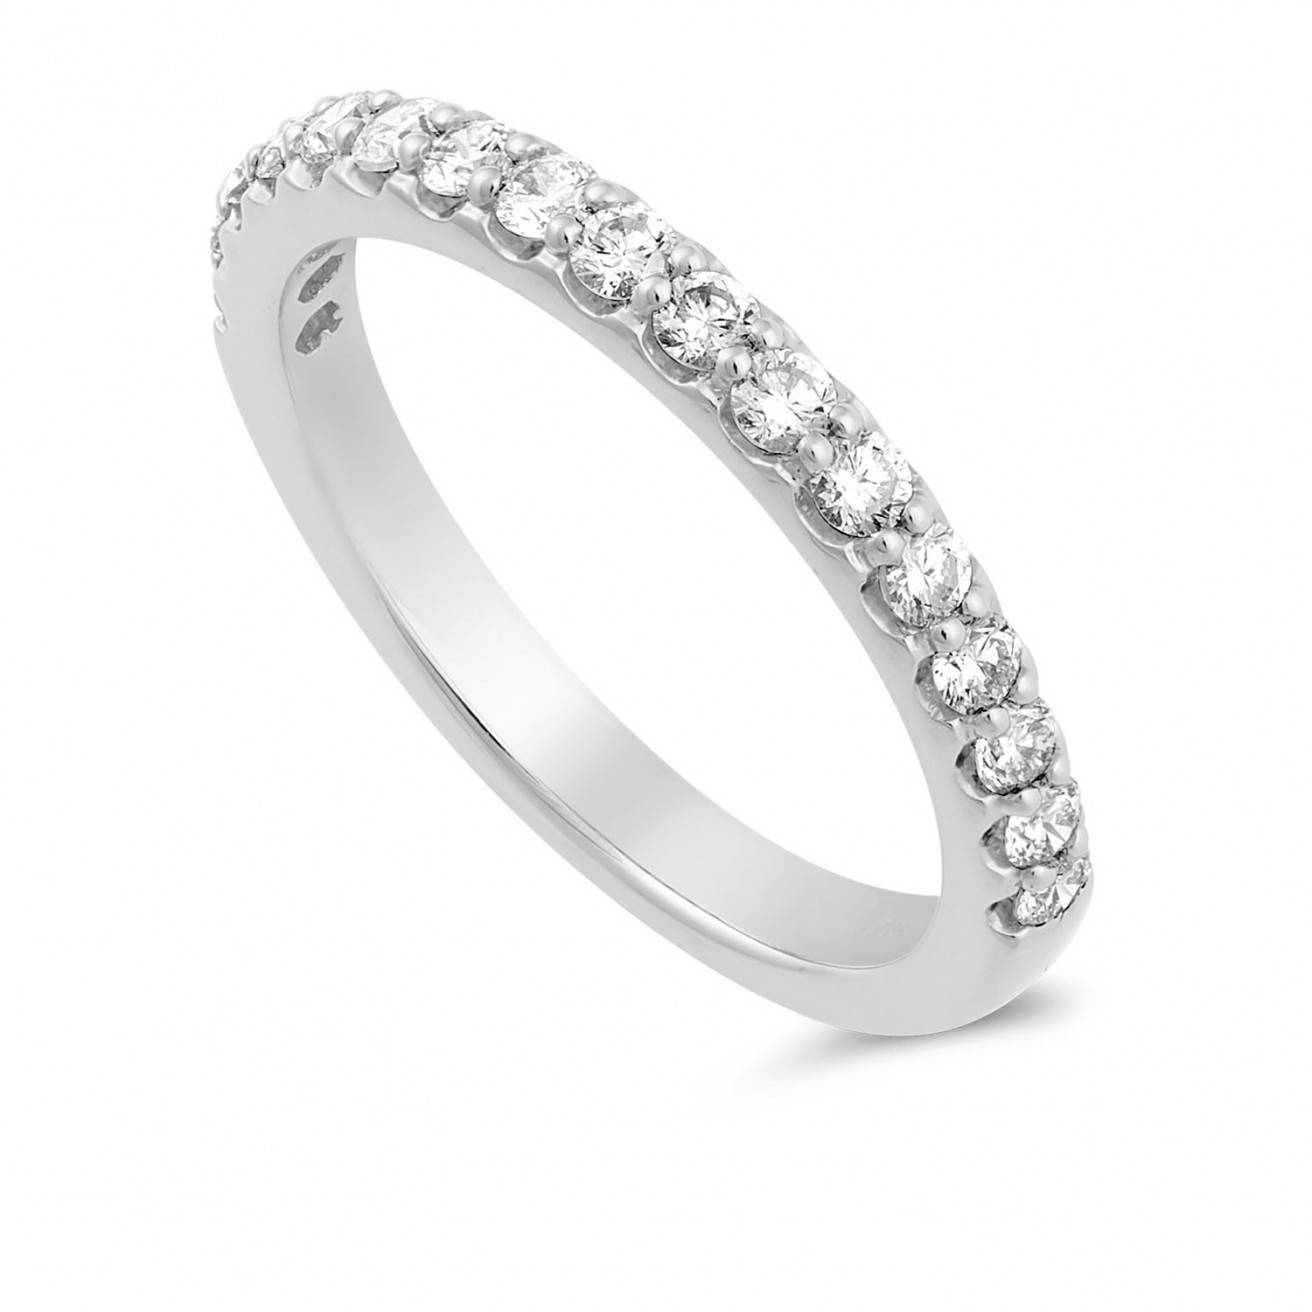 Buy Platinum Wedding Bands Online – Fraser Hart With Most Current Platinum Diamond Wedding Bands (View 3 of 15)